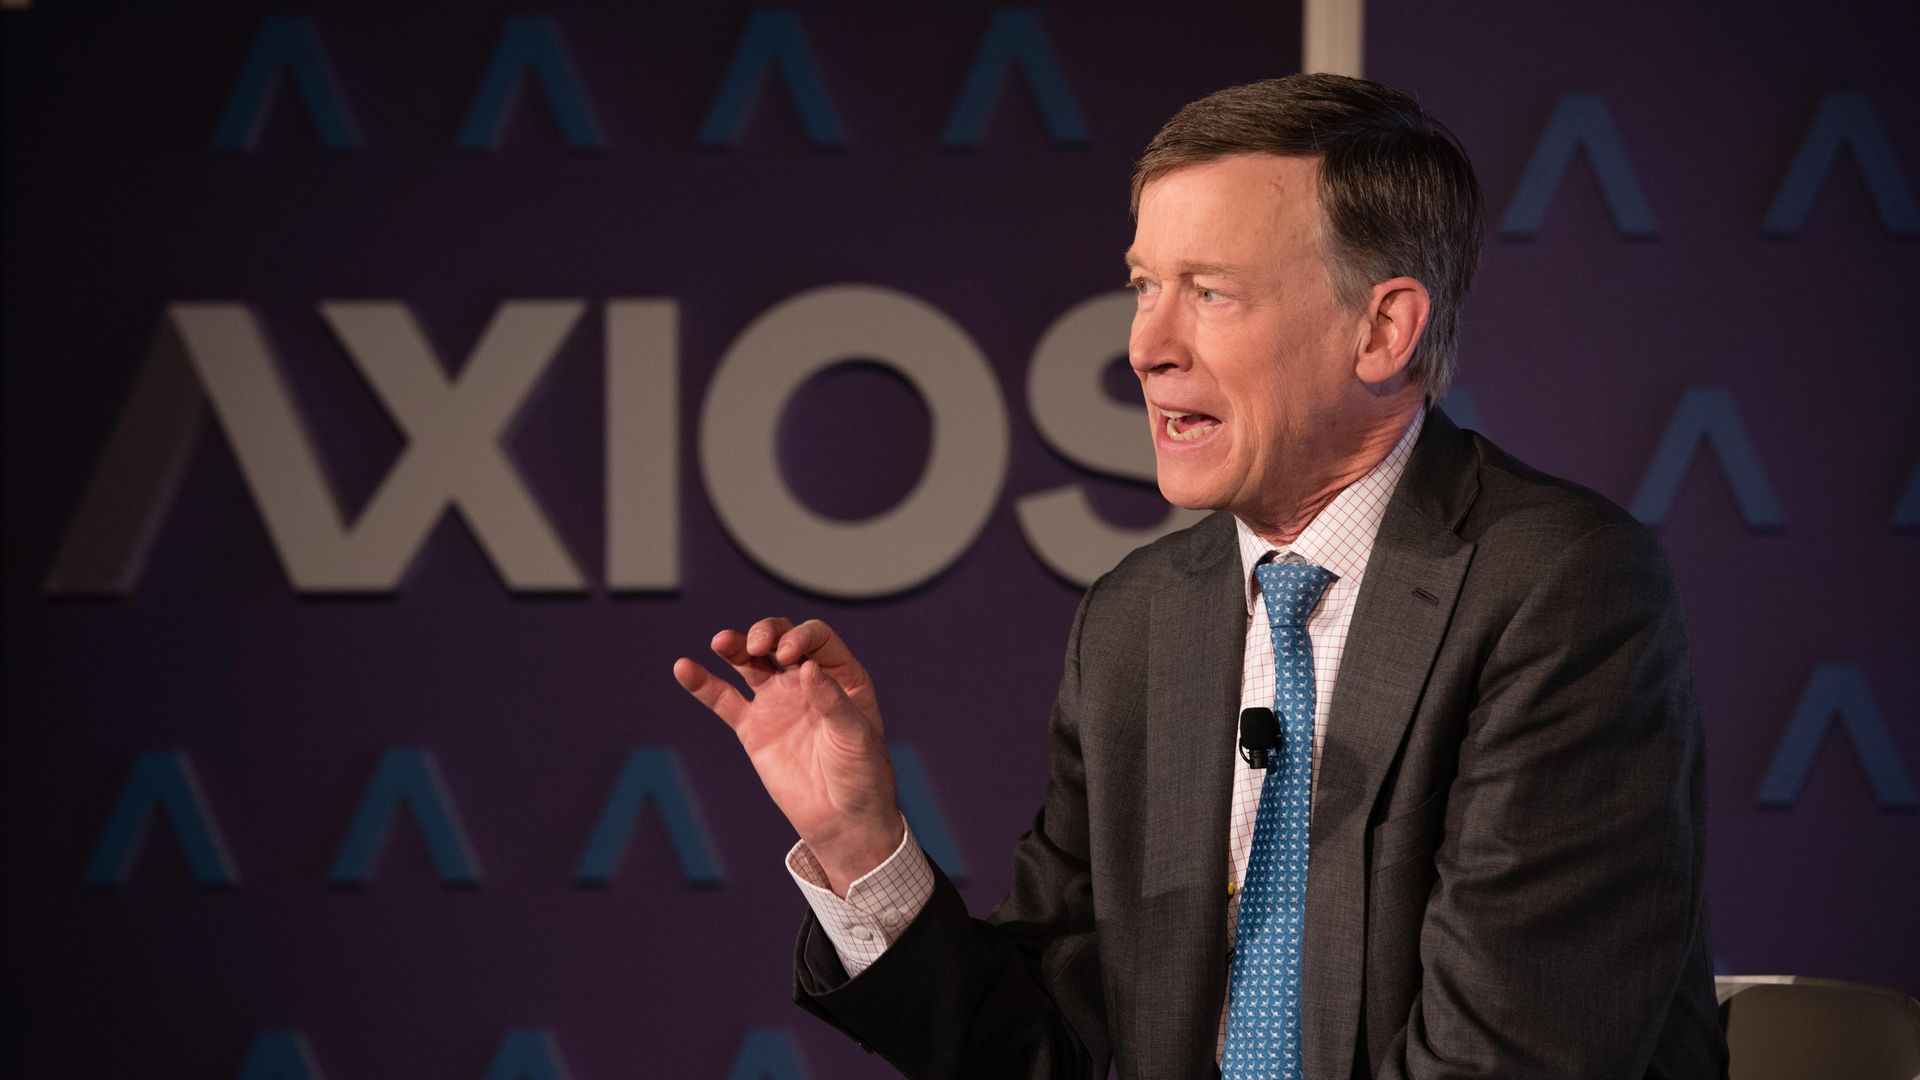 John Kasich speaks at Friday's Axios event